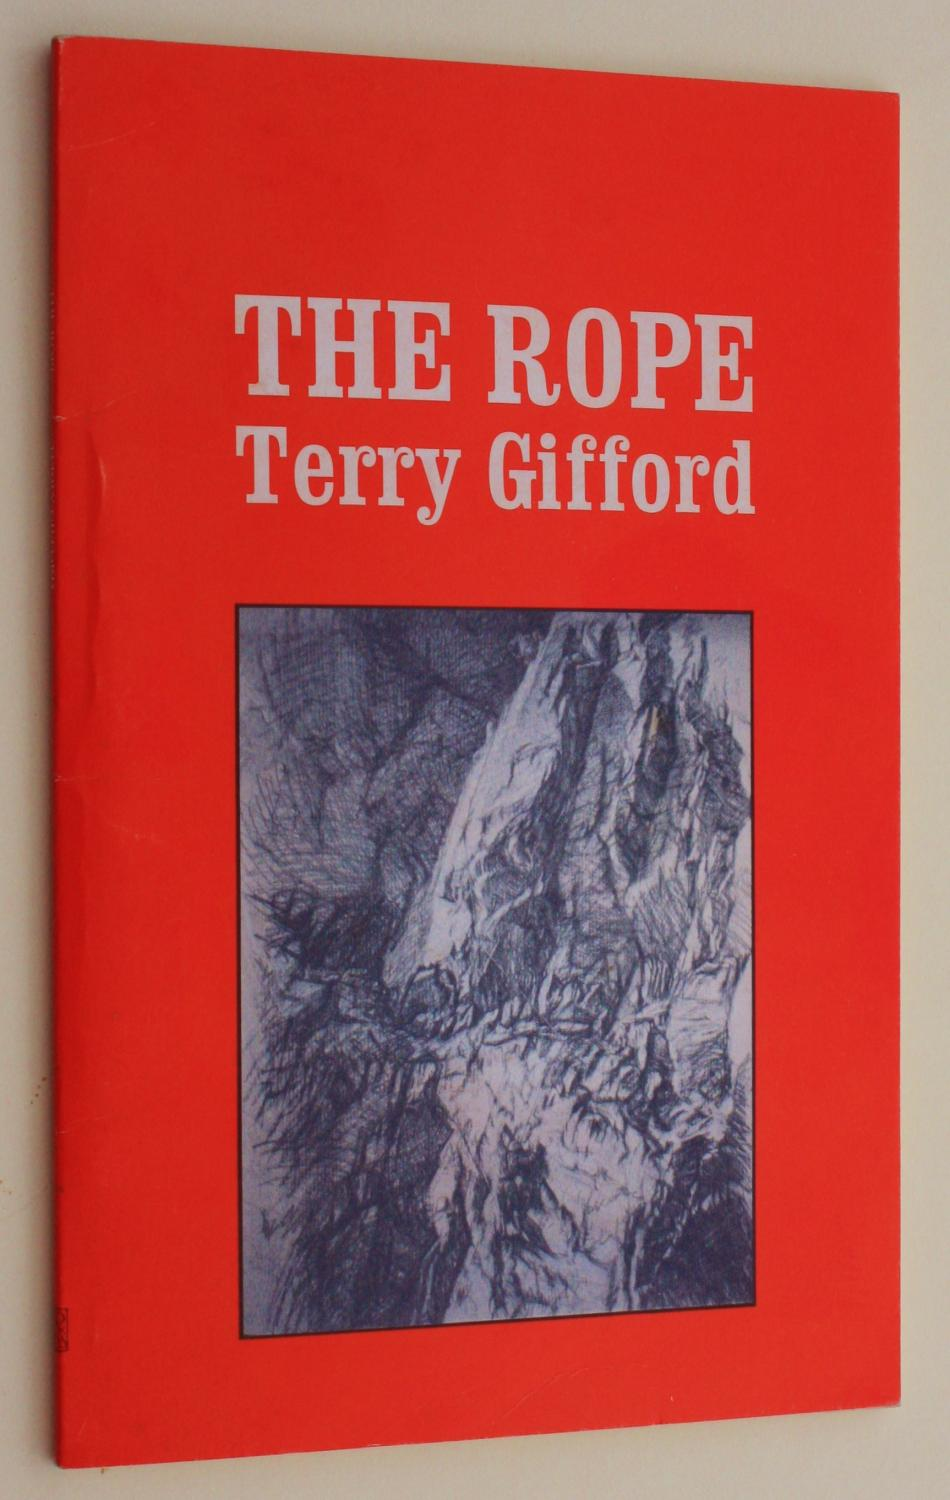 The Rope Terry Gifford